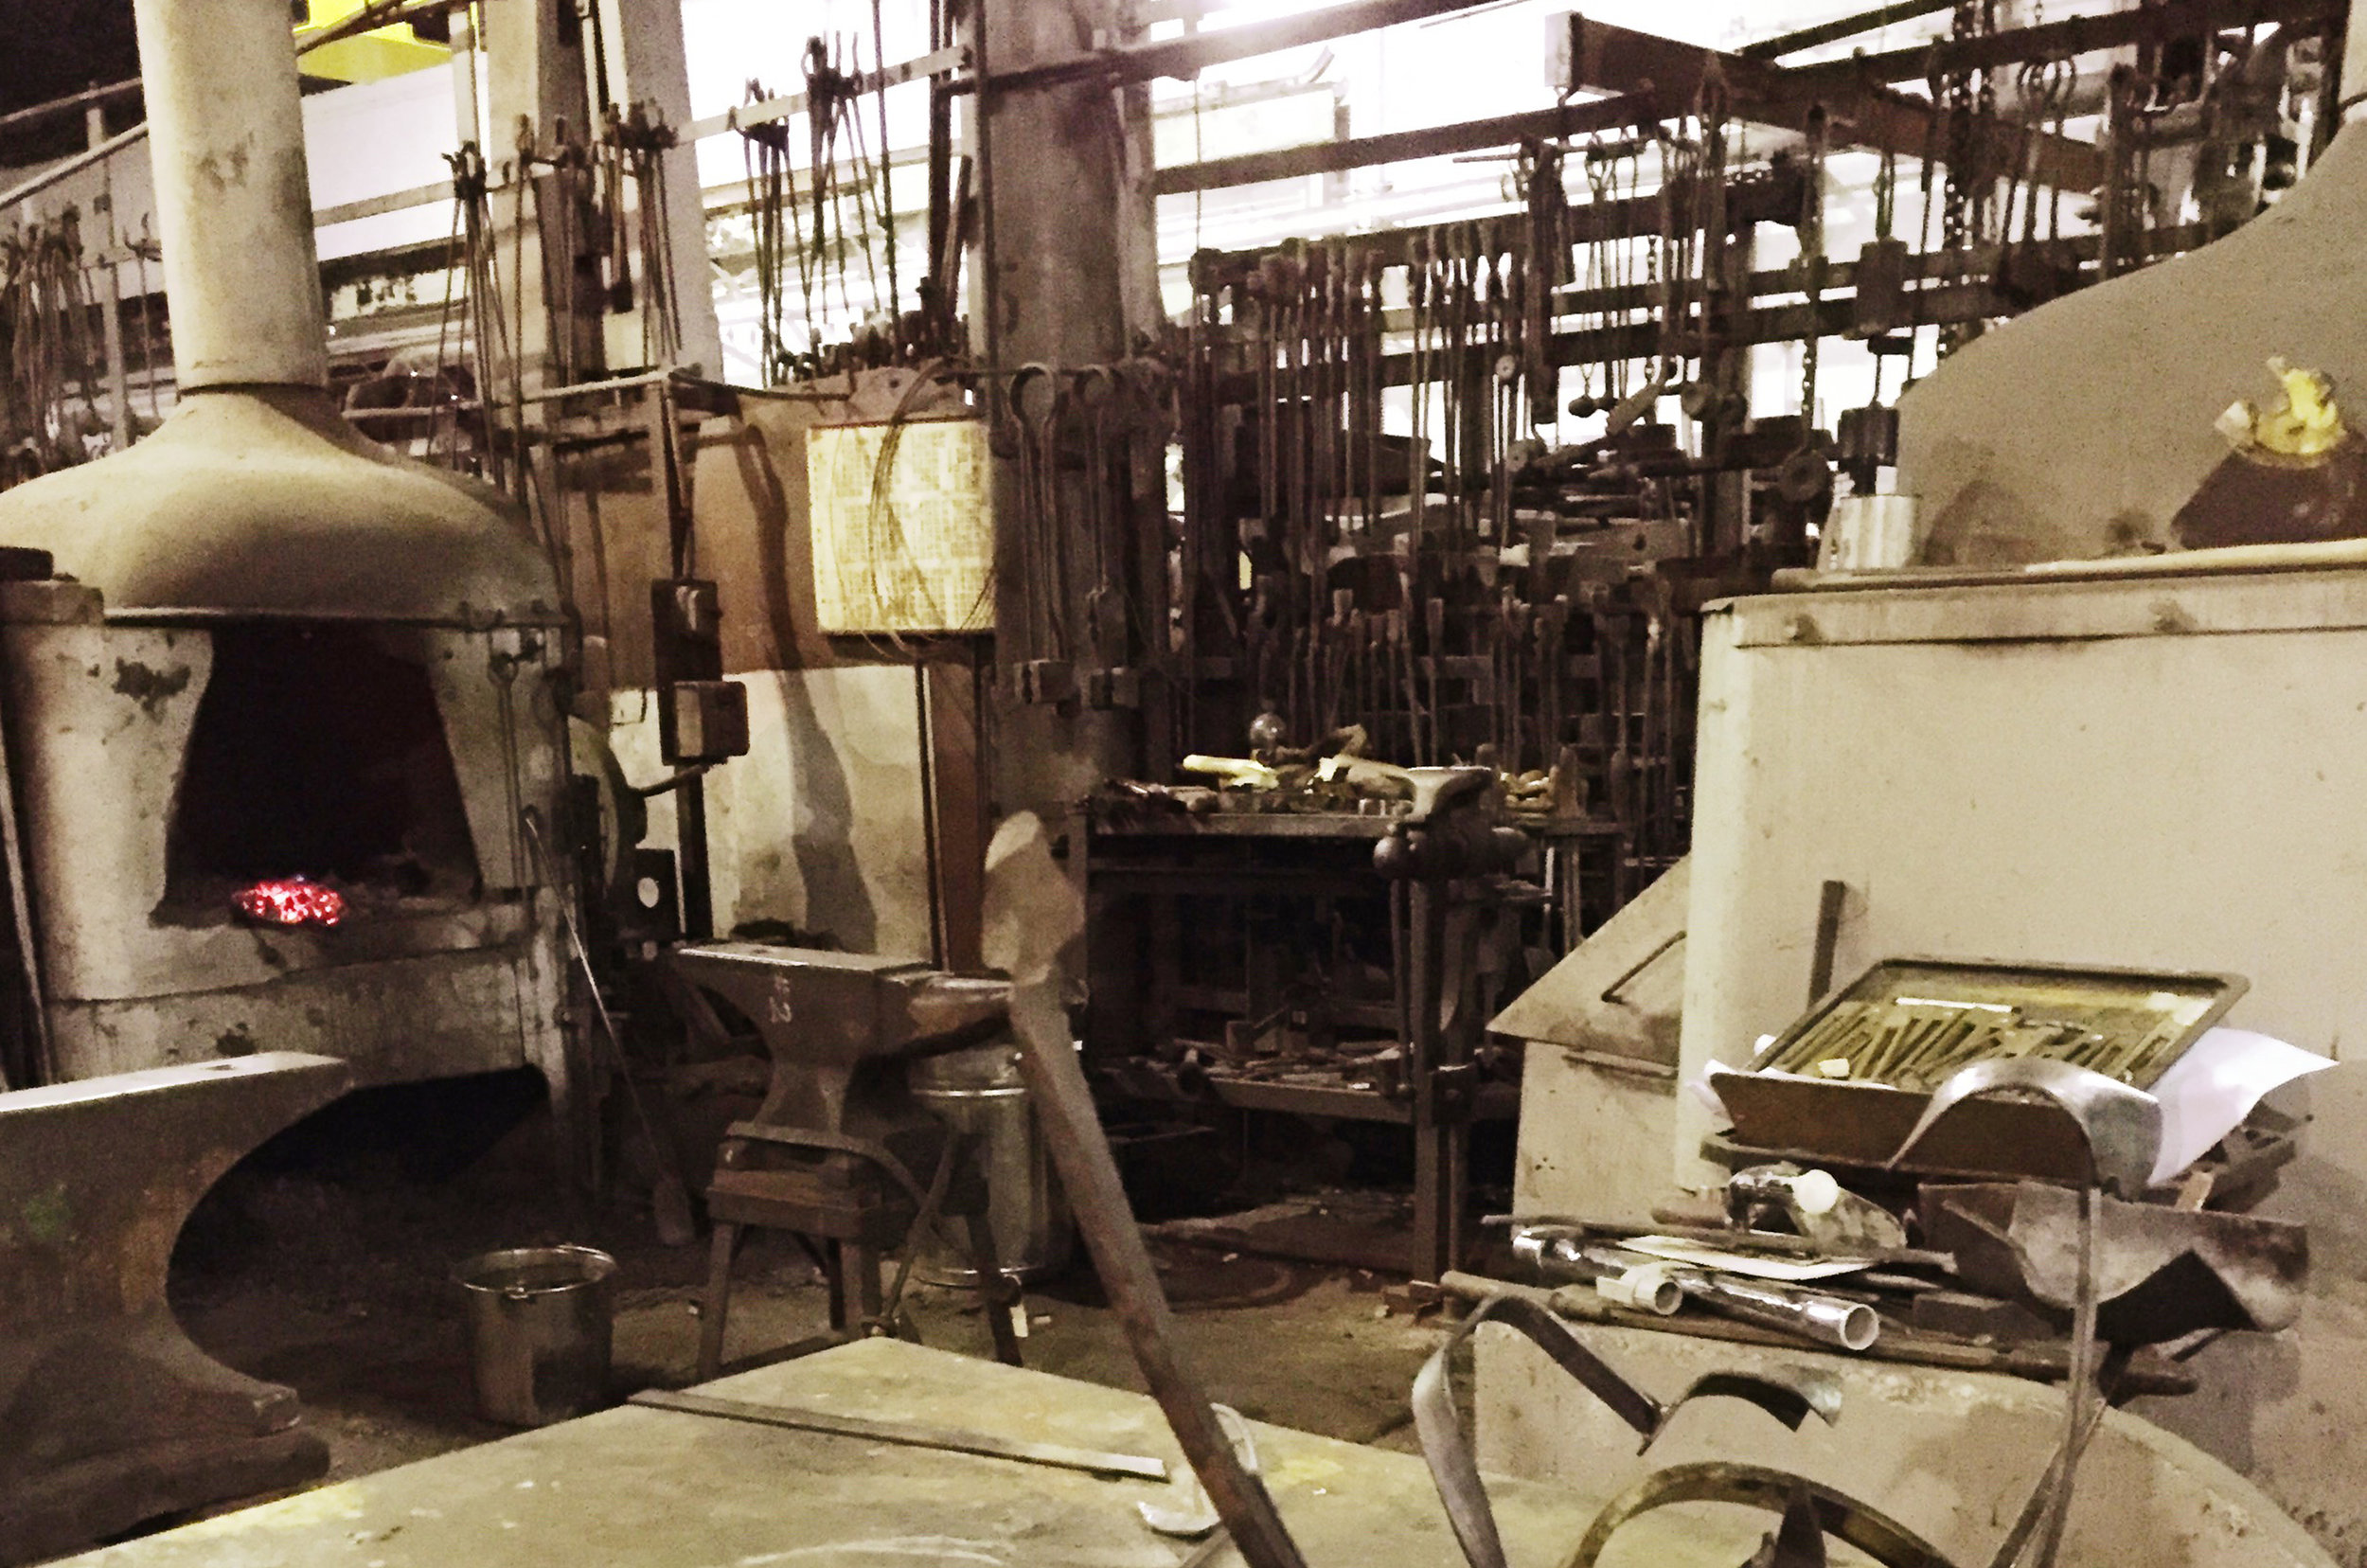 Equipment at the Eveleigh Workshops